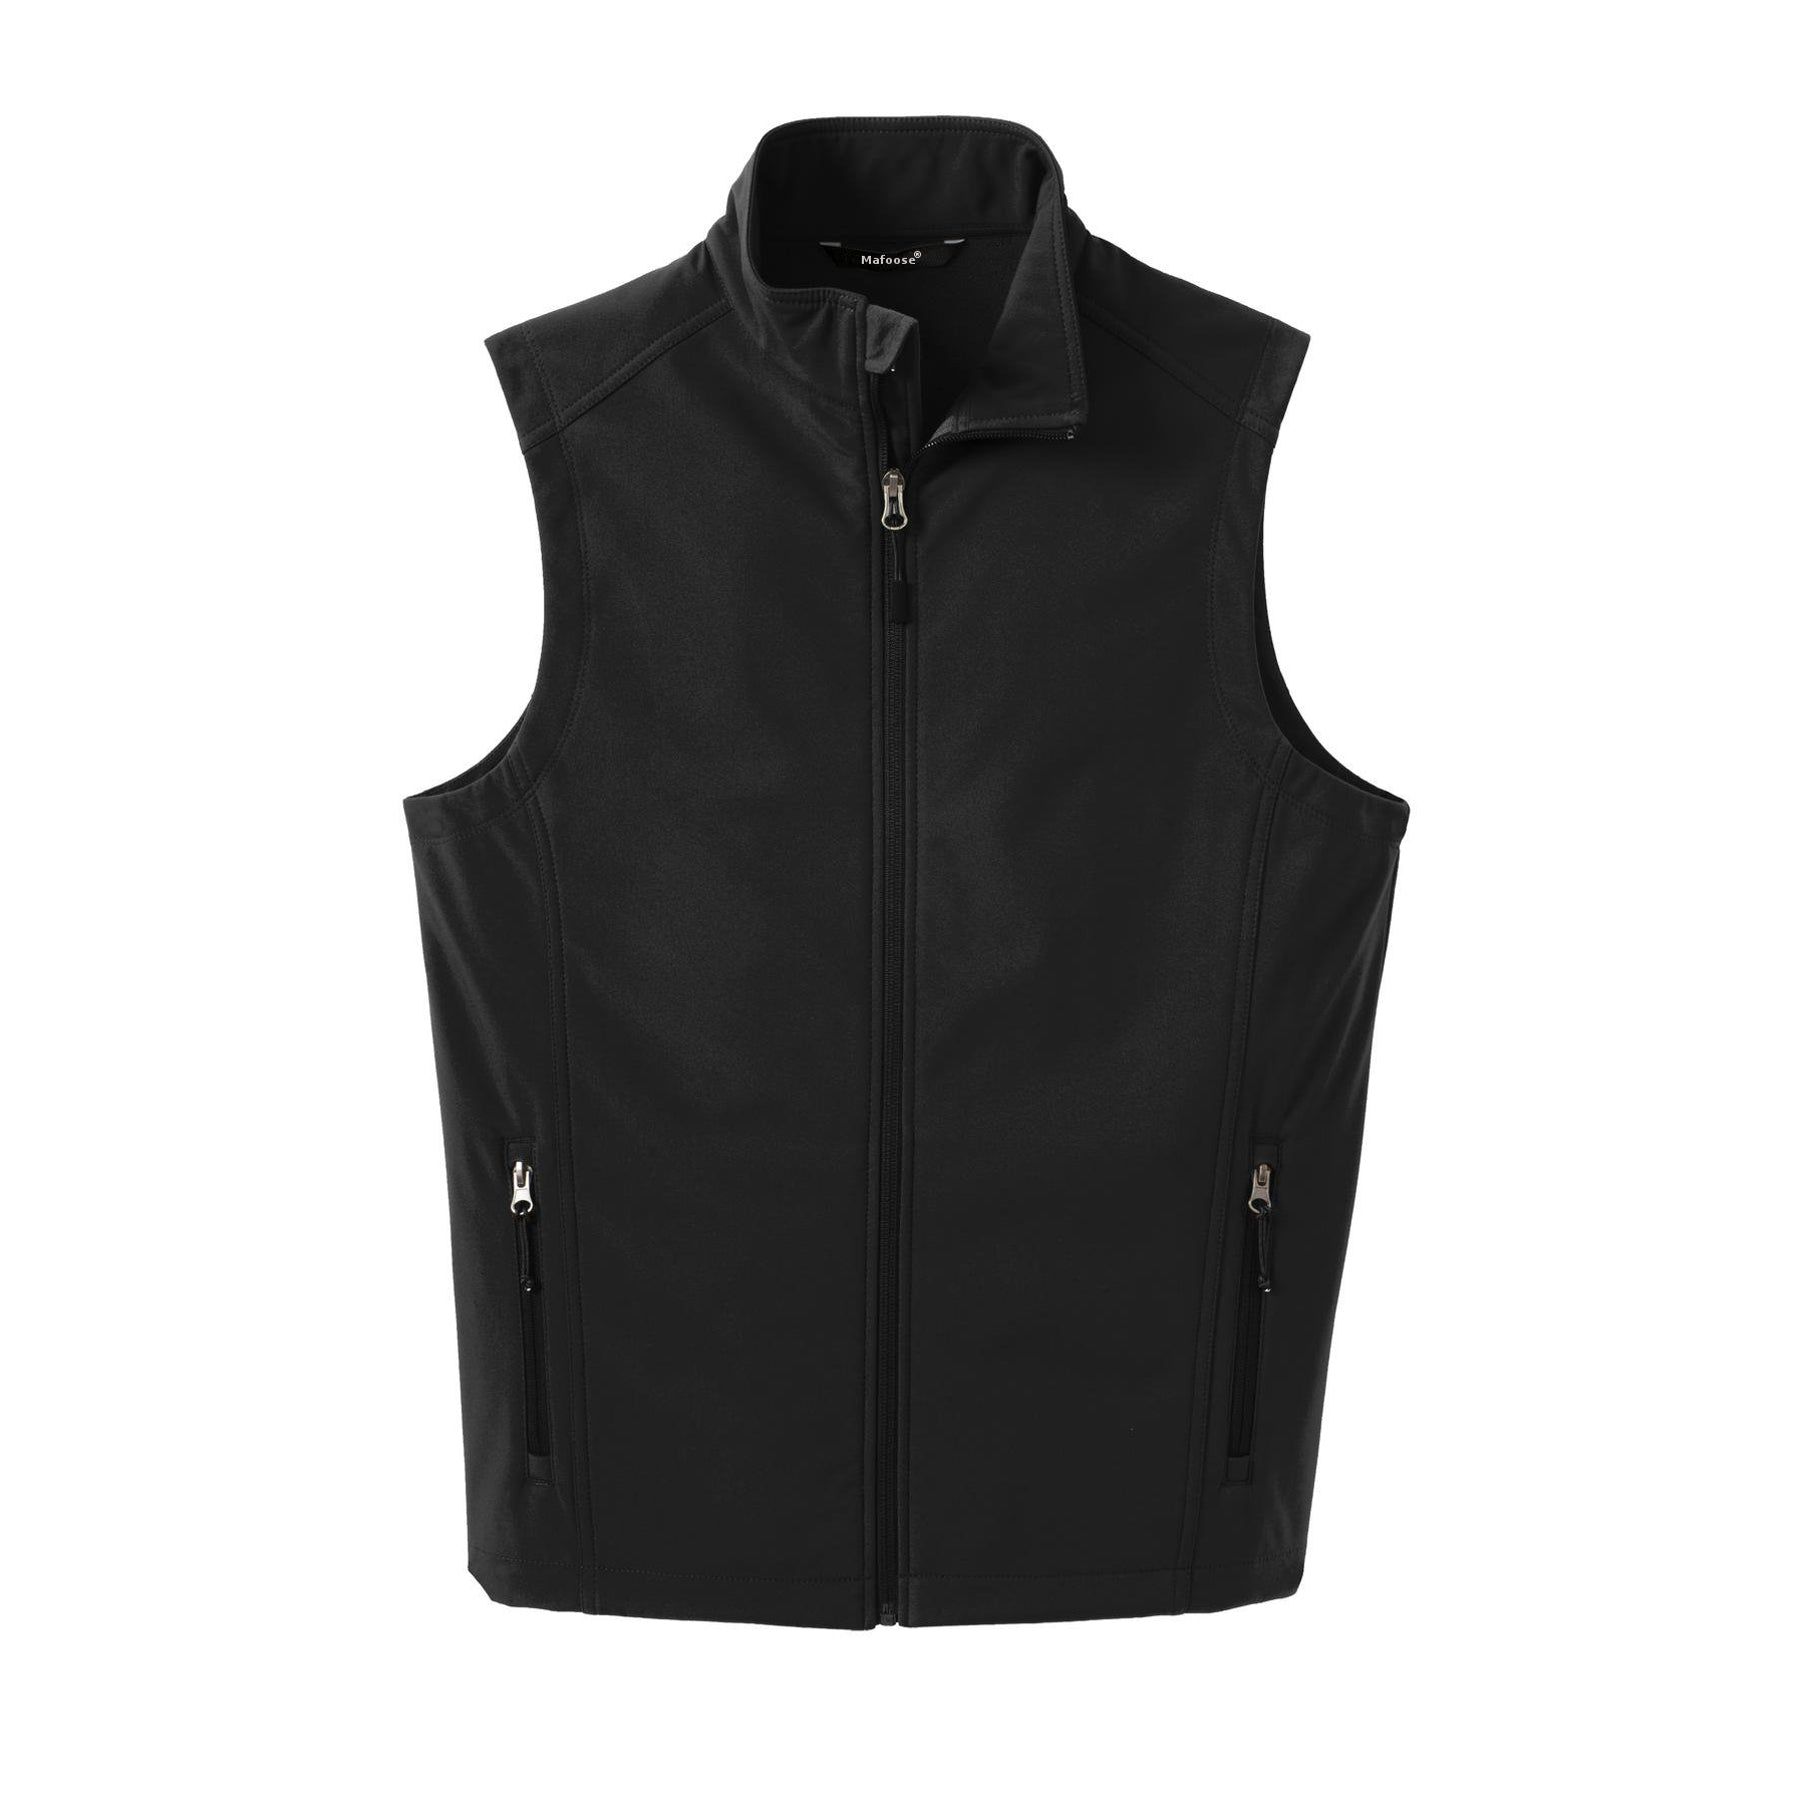 Mafoose Men's Core Soft Shell Vest Black